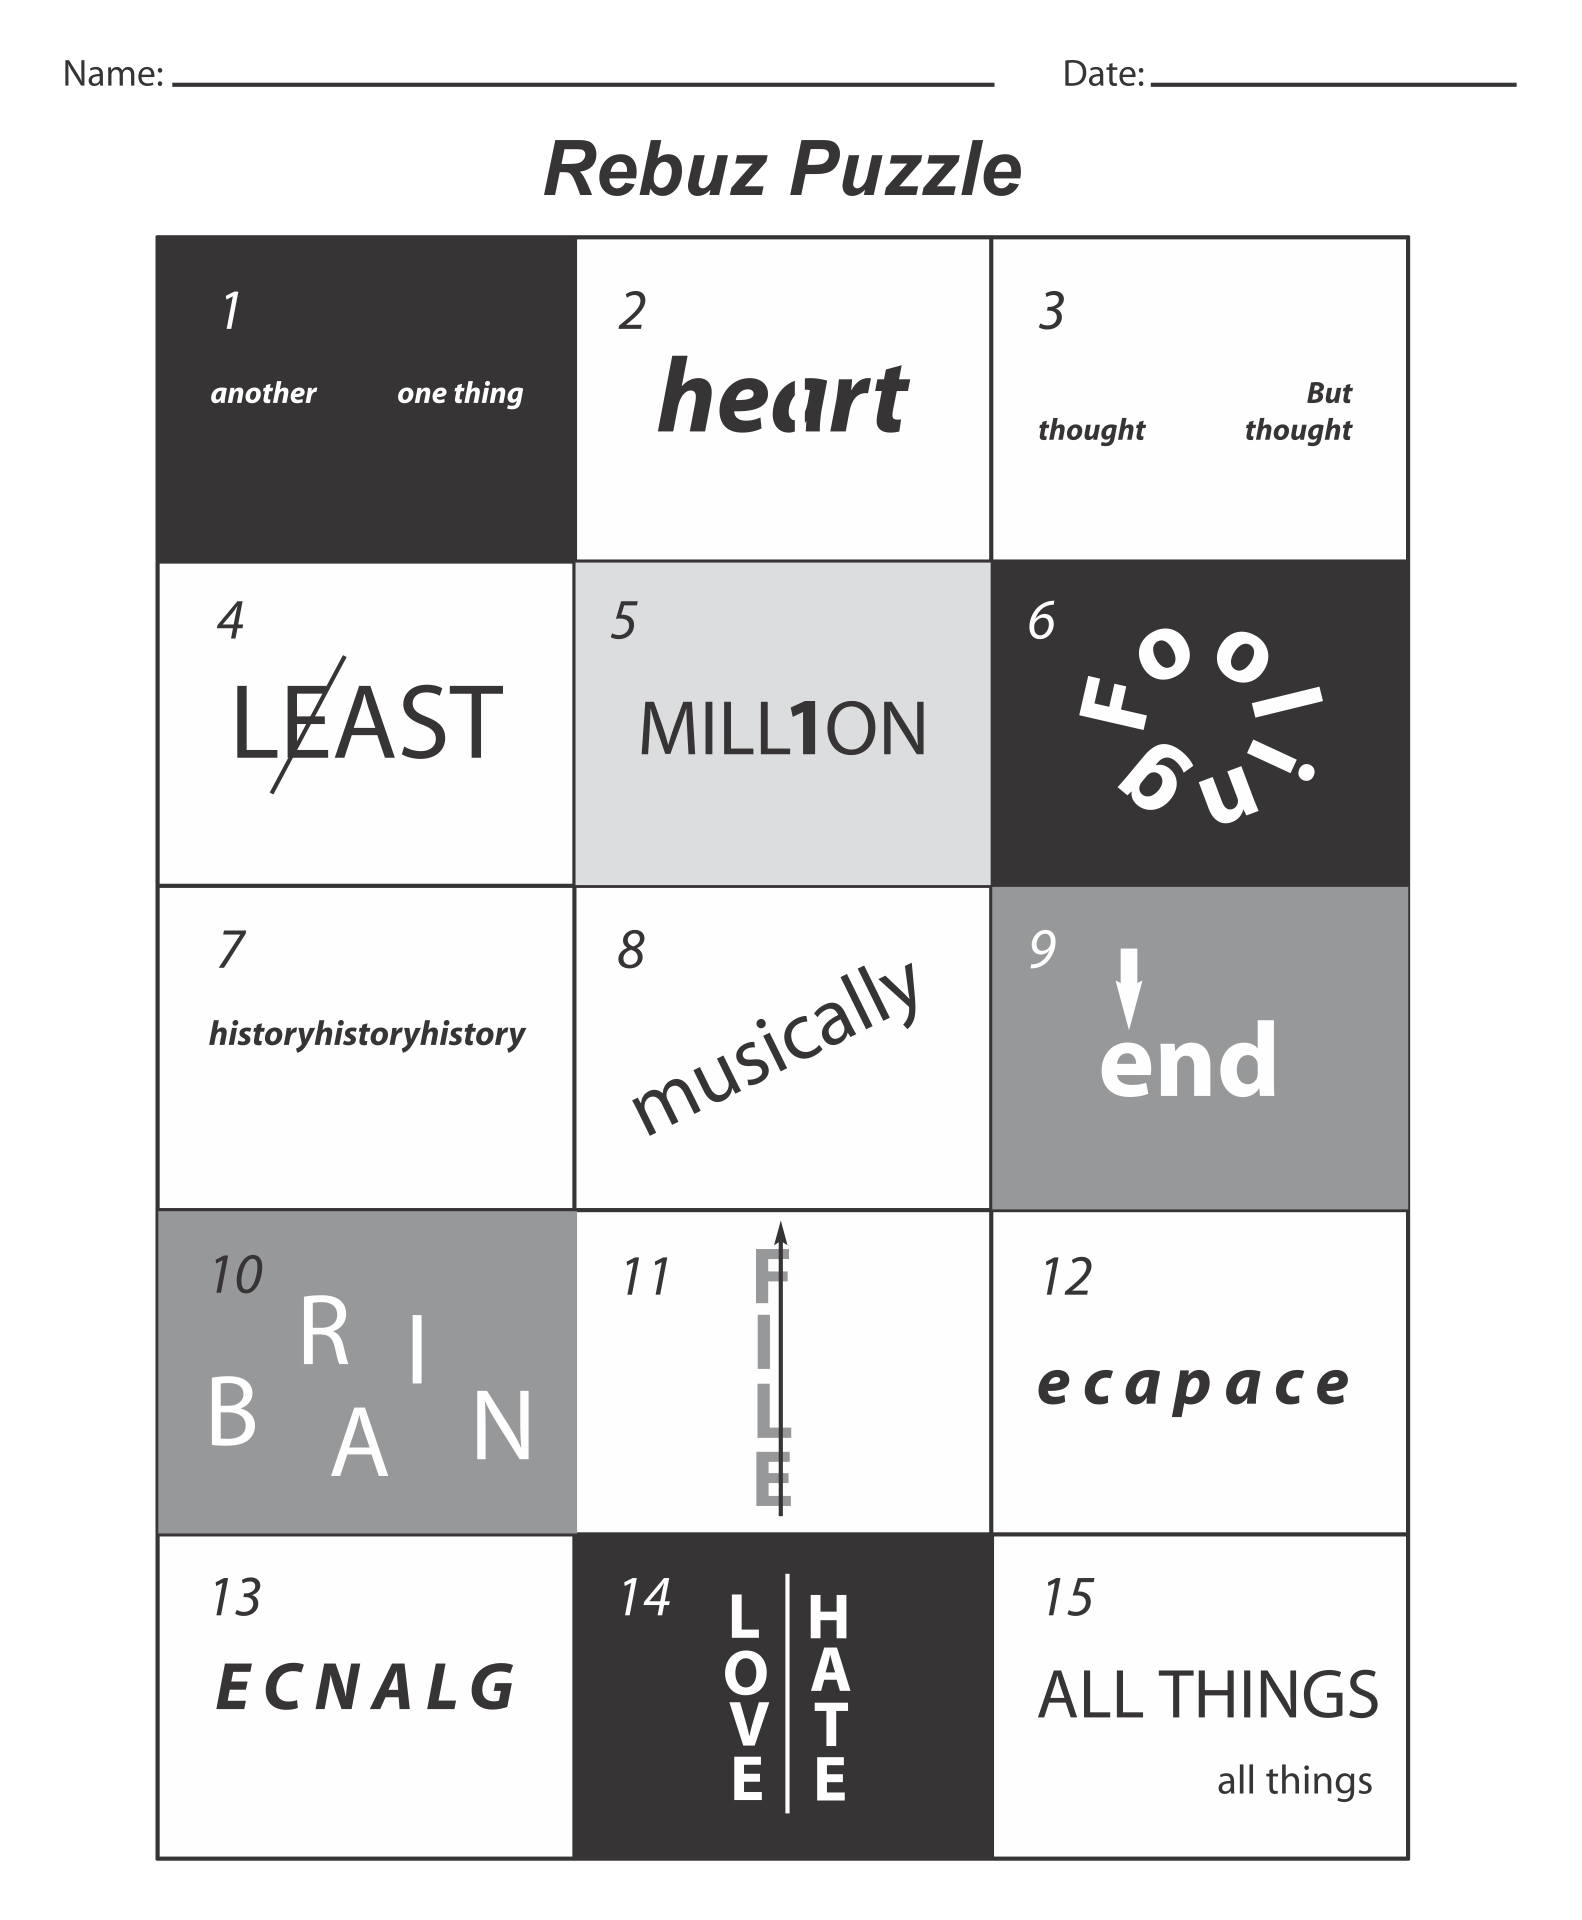 Rebus Puzzle Brain Teasers